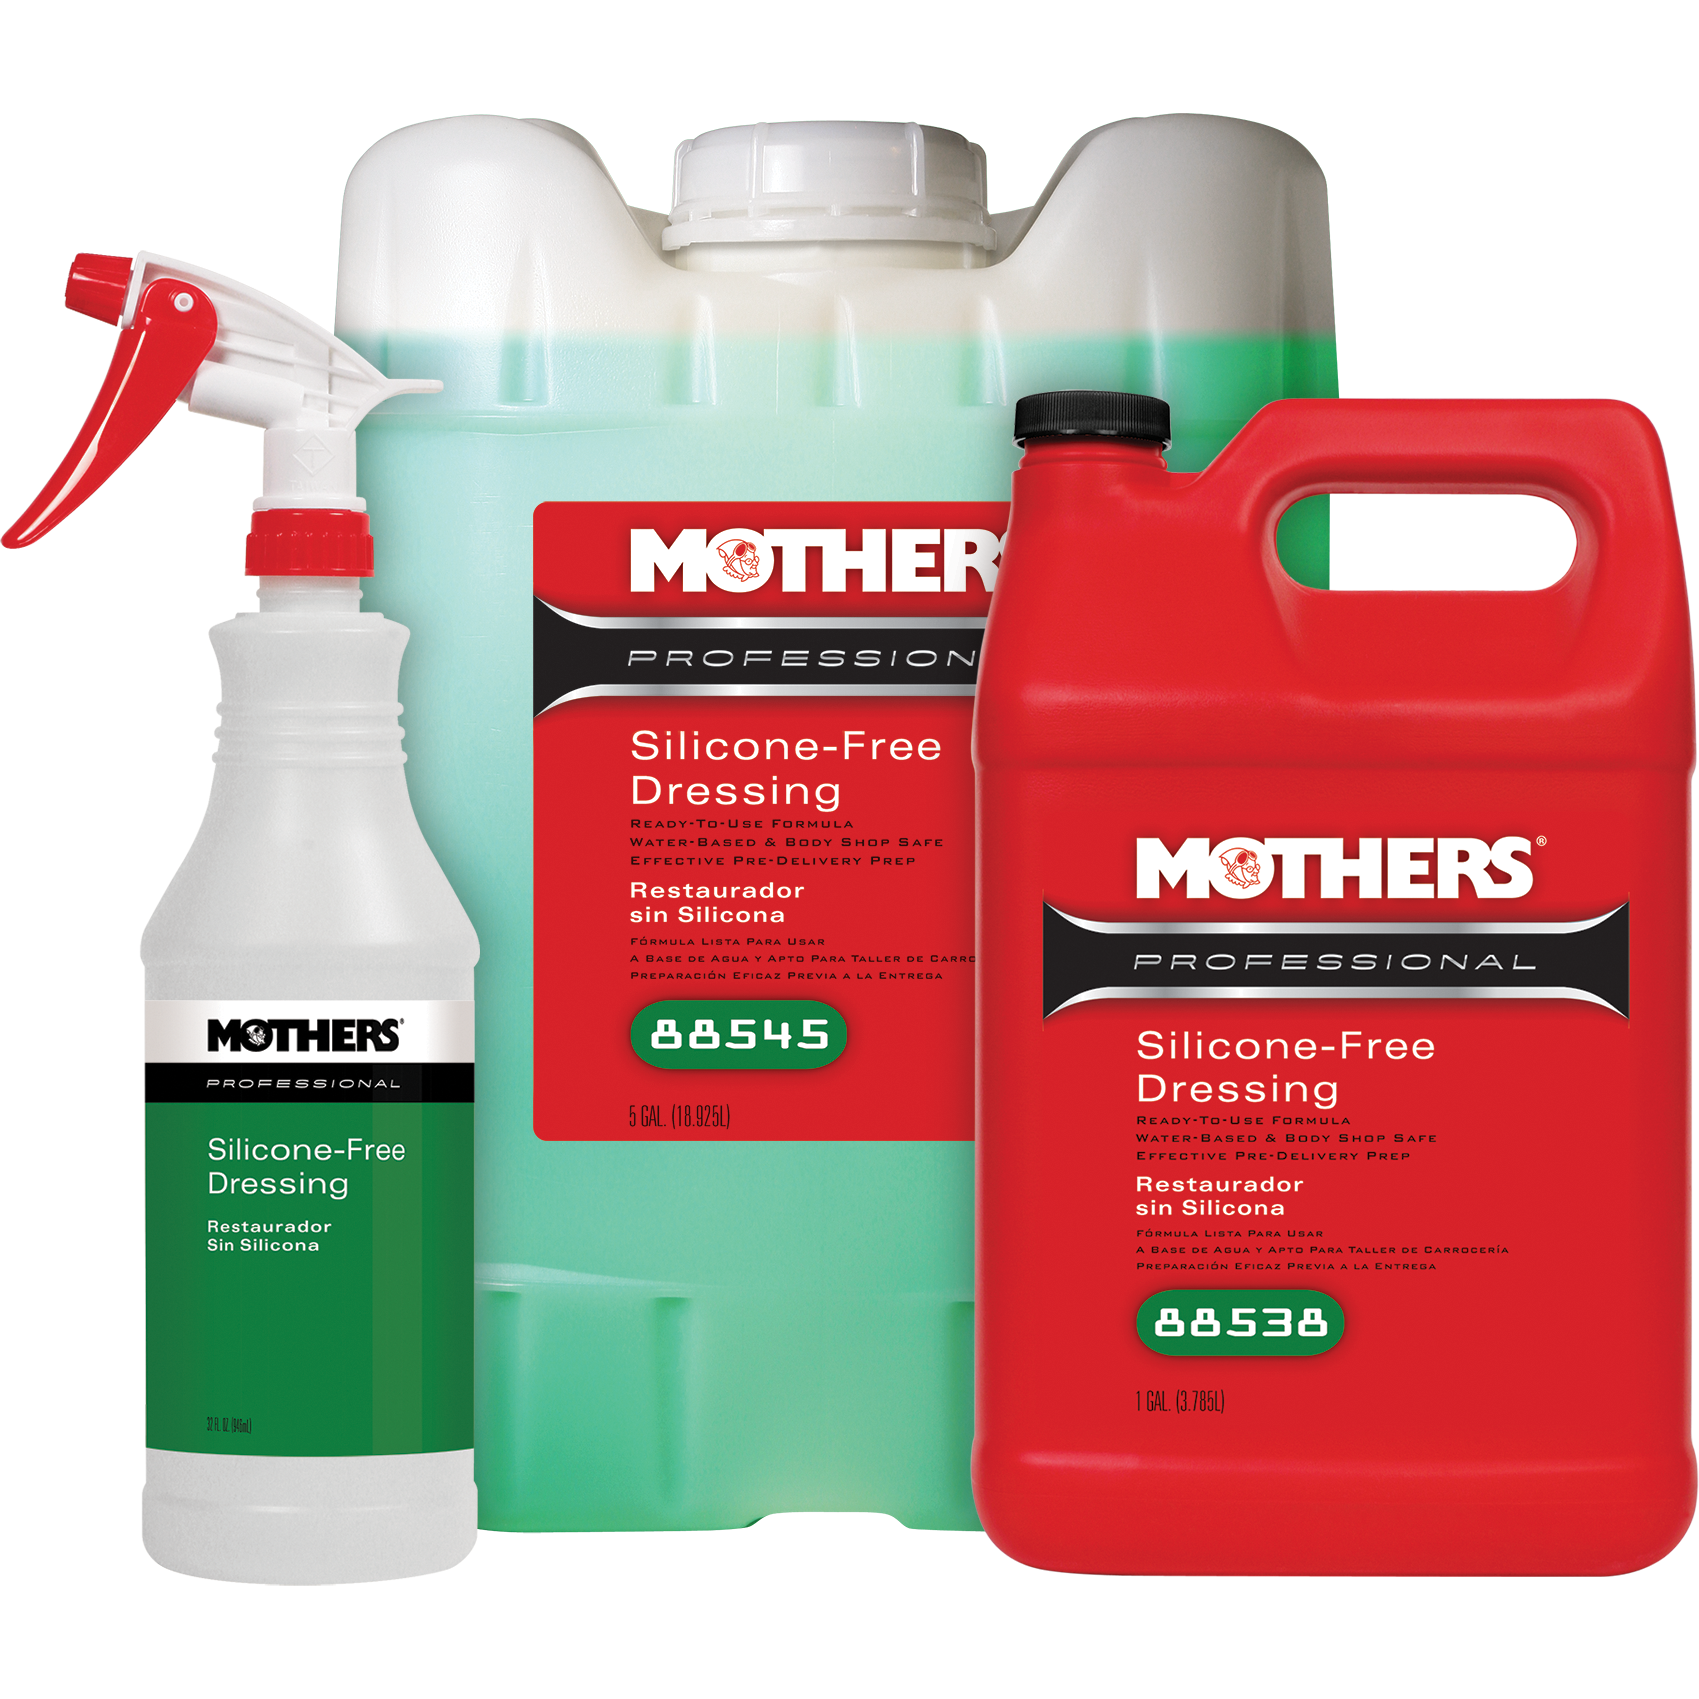 Mothers® Professional Silicone-Free Dressing